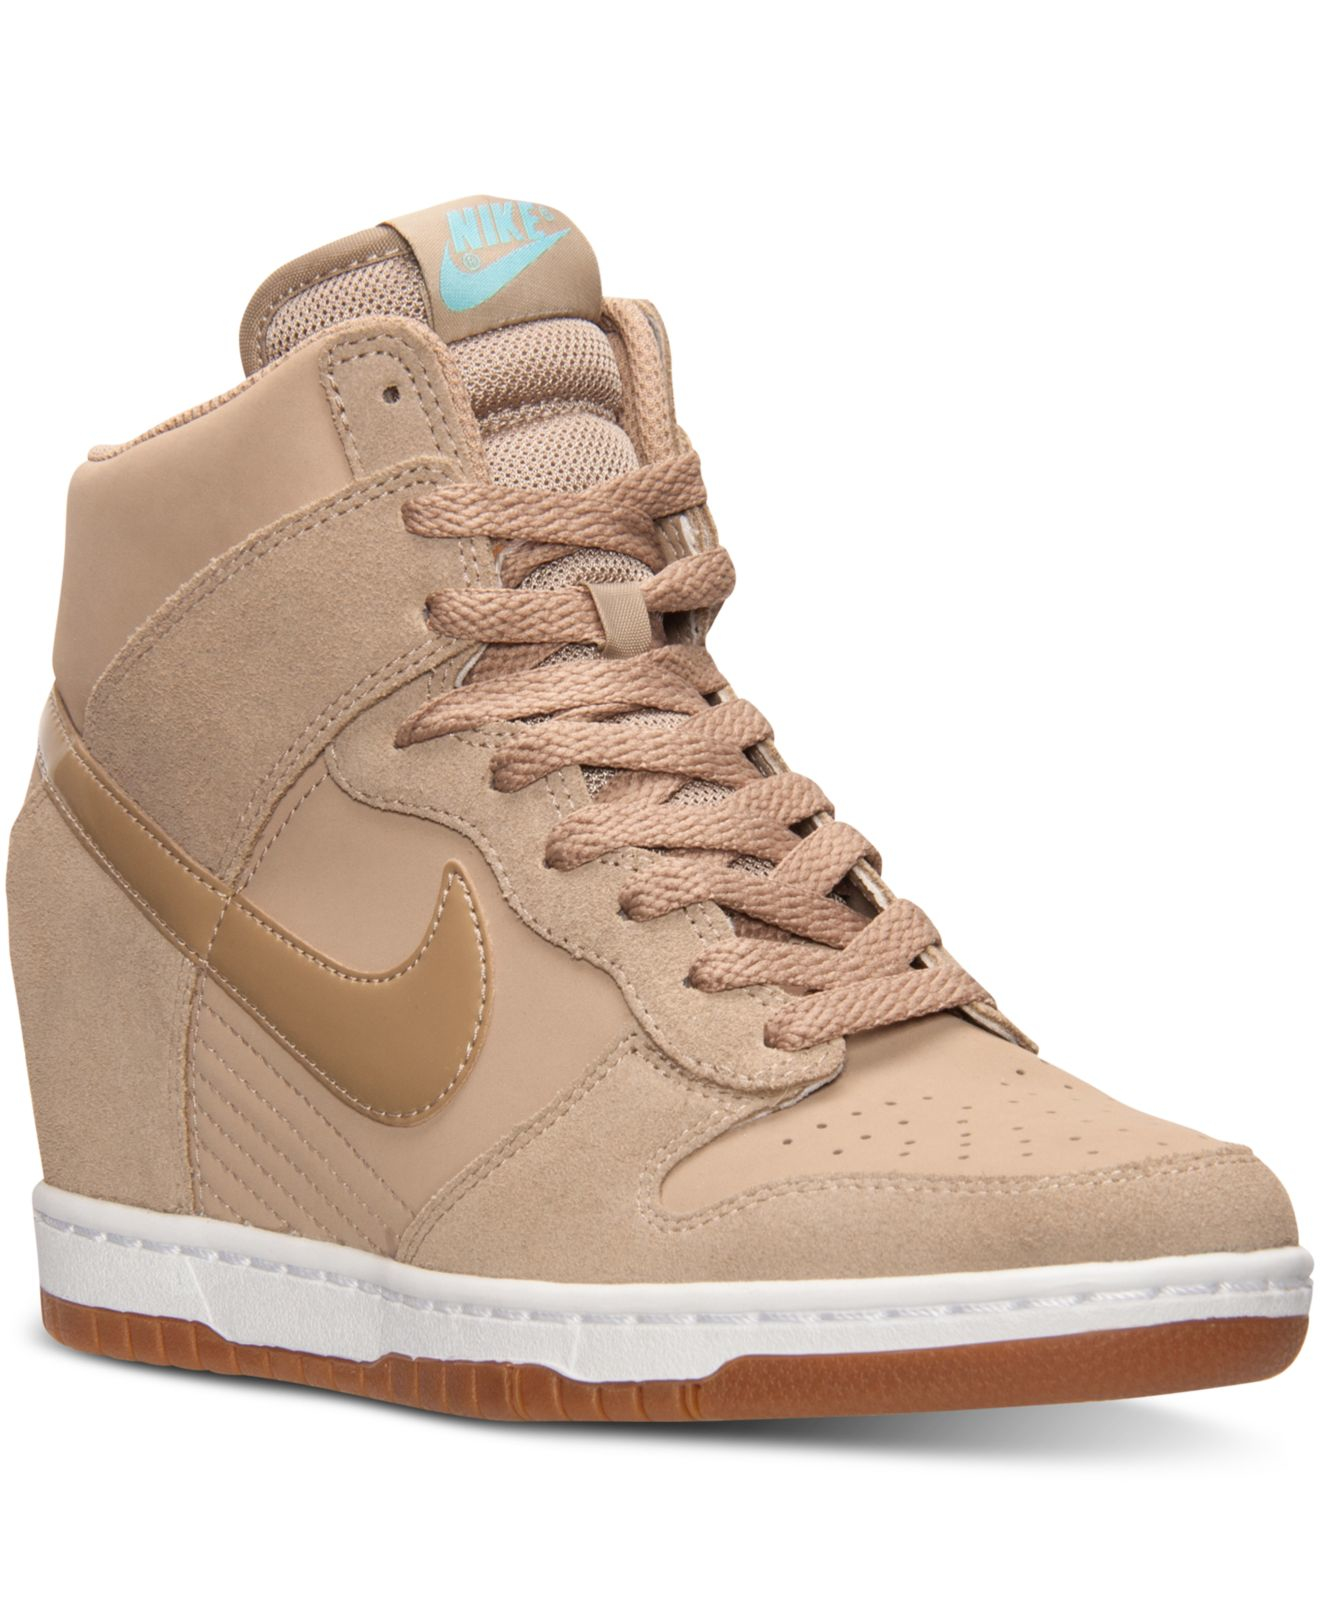 lyst nike women 39 s dunk sky hi essential casual sneakers from finish line in natural. Black Bedroom Furniture Sets. Home Design Ideas